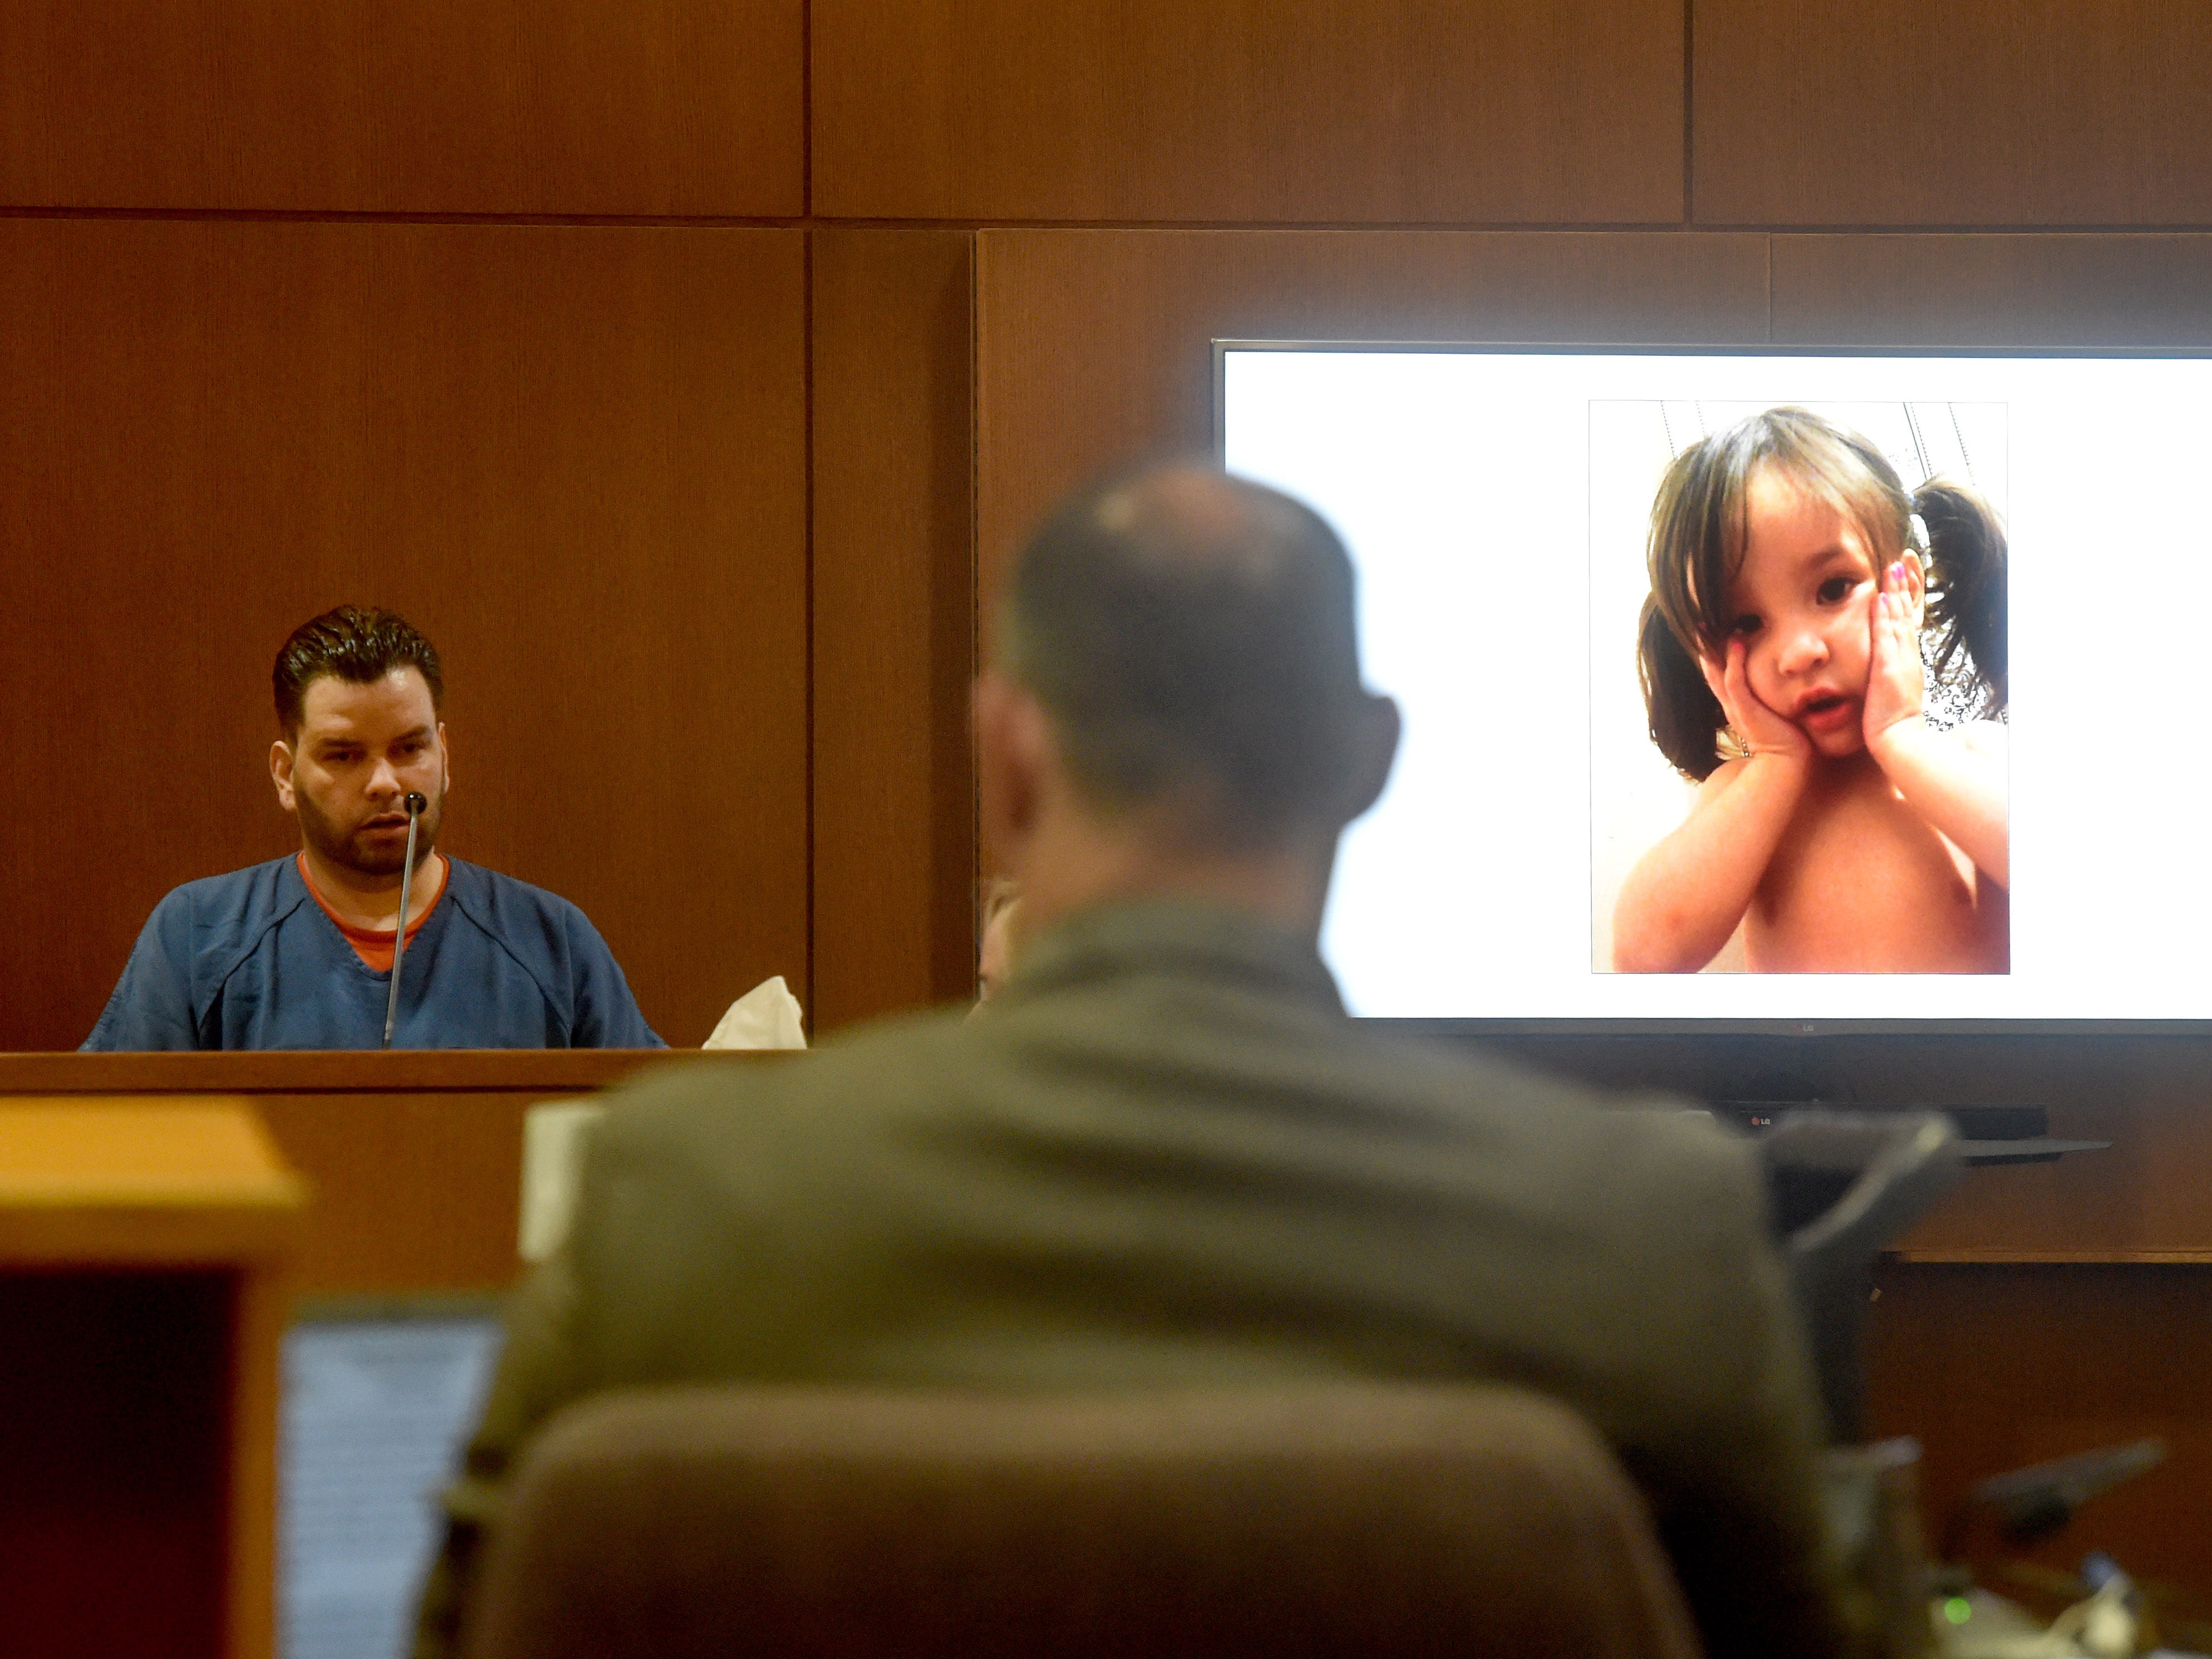 Omar Lopez, 33, of Oxnard, testifies during the trial of Mayra Chavez on Dec. 3, 2018, in Ventura County Superior Court.  Chavez is charged with second-degree murder in the death of their daughter Kimberly. A photo of a young Kimberly was projected on a screen next to the witness stand.